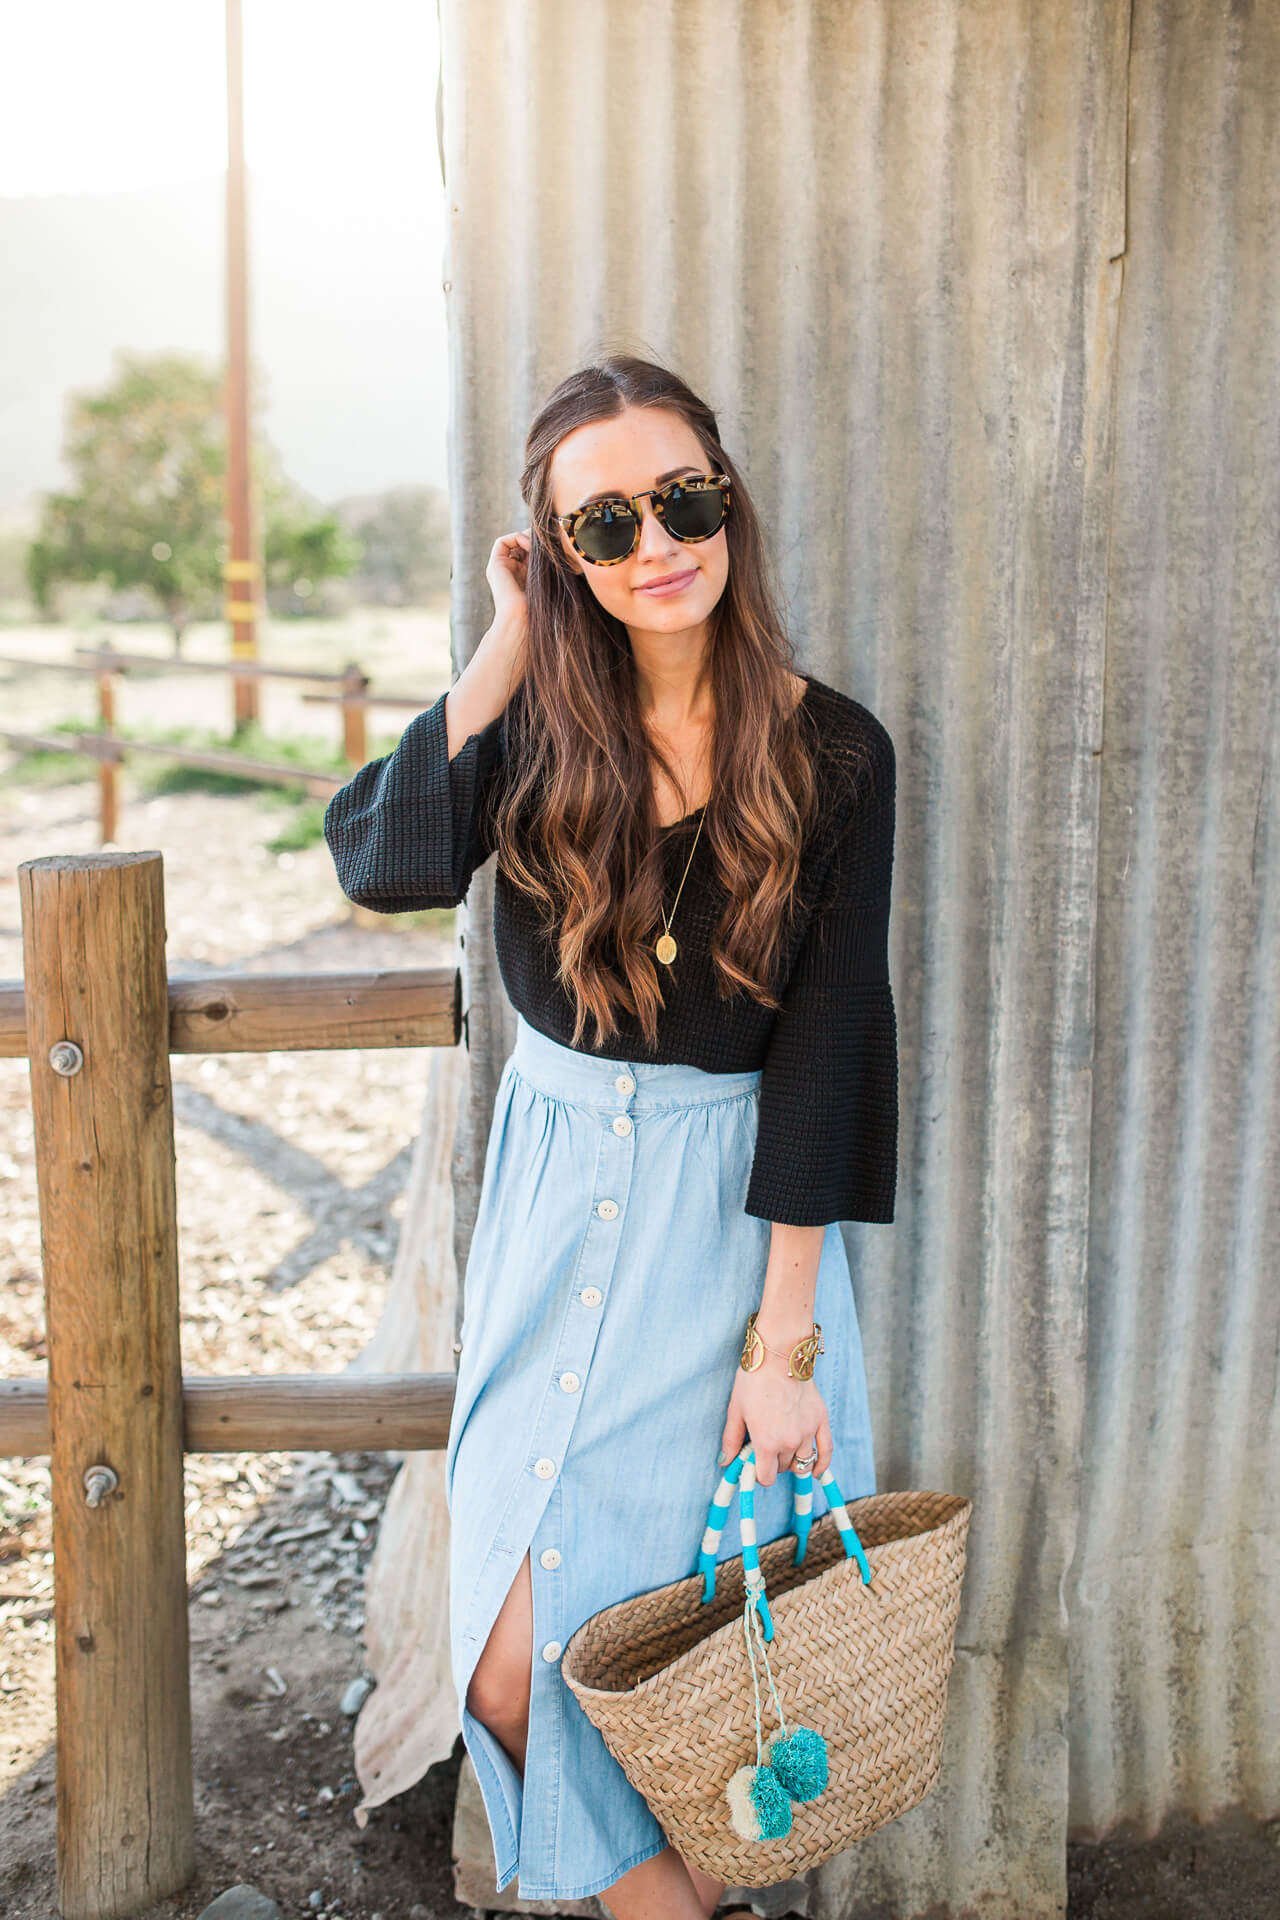 outfit inspiration for spring - M Loves M Los Angeles fashion blogger @marmar